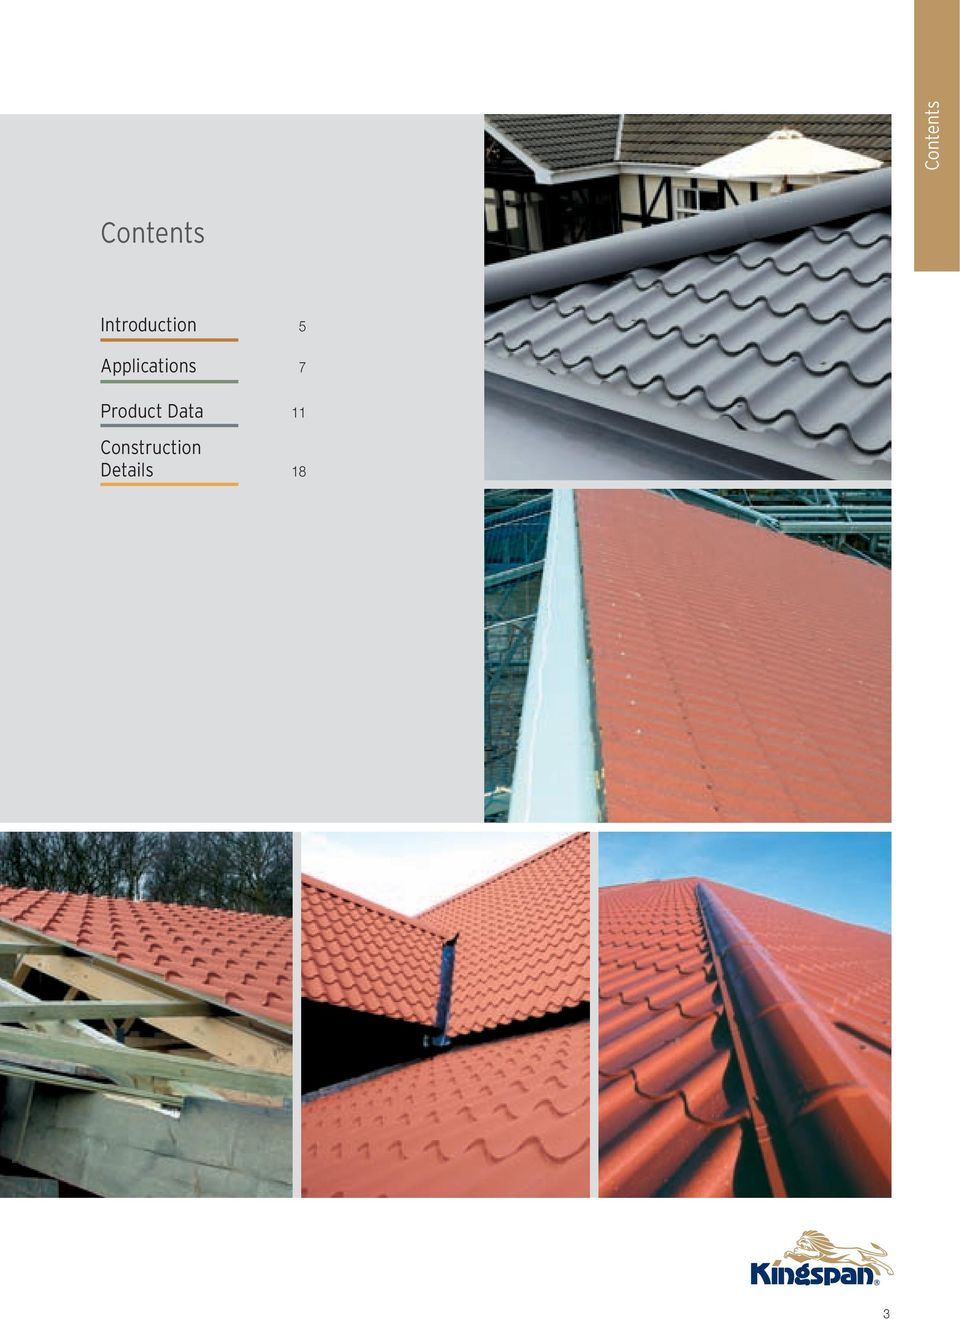 Kingspan Roof Tile  Insulated Panels  Insulated Tile Effect